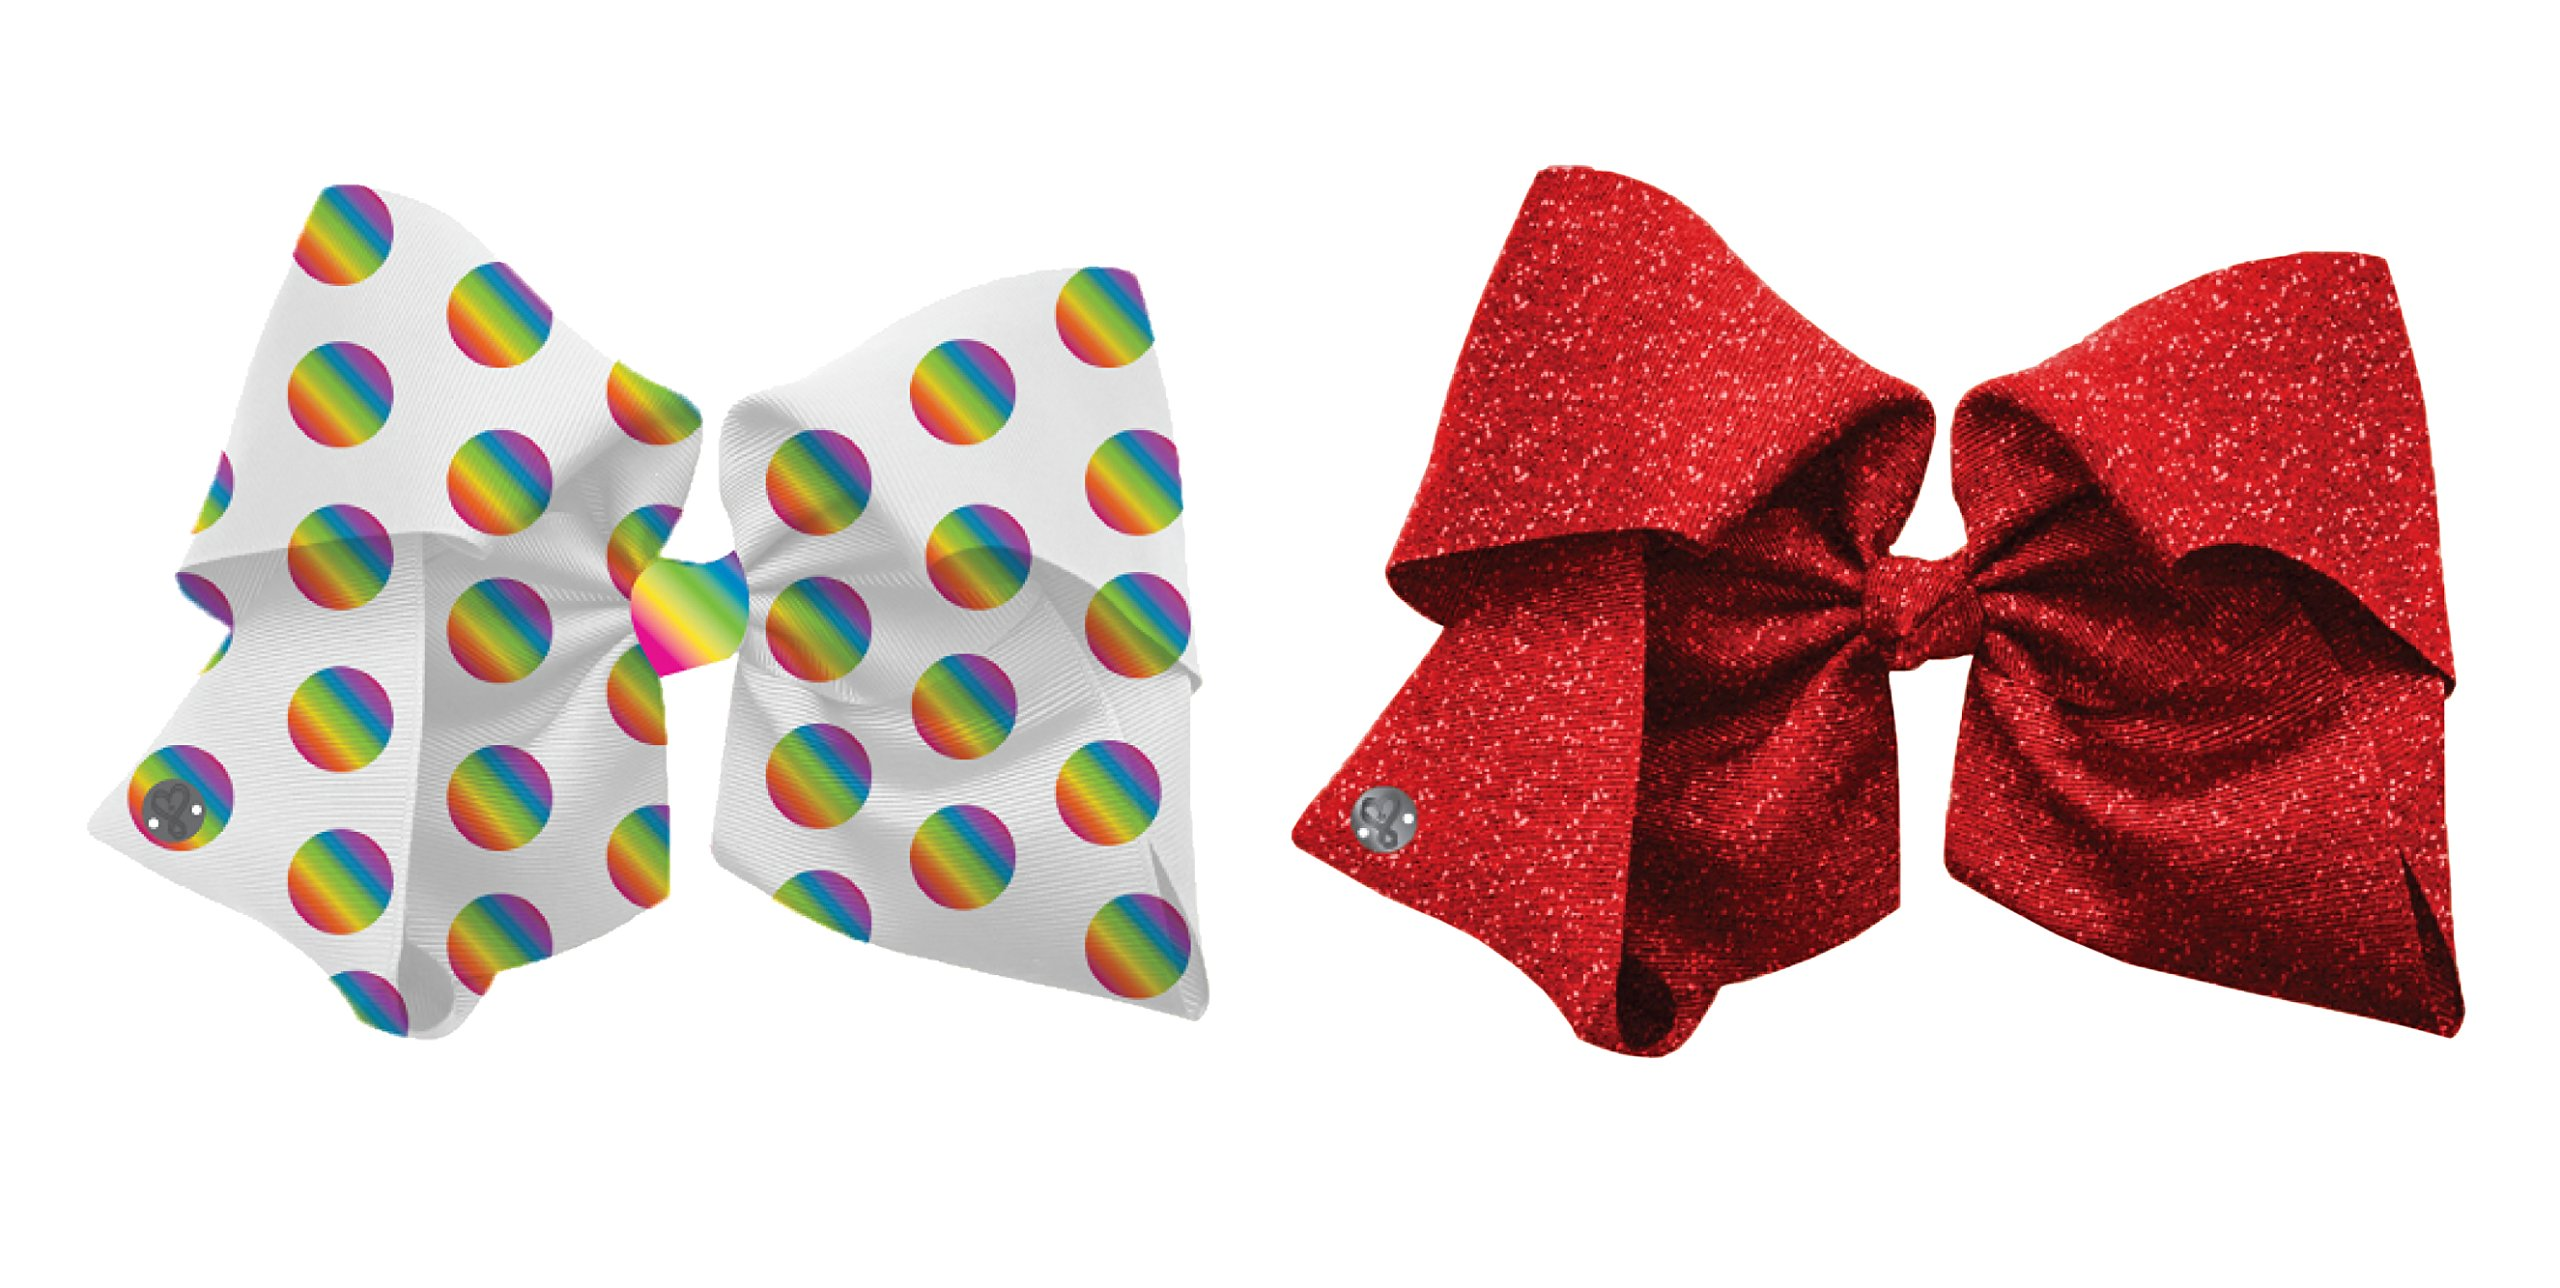 Jojo Siwa Signature Collection Hair Bow 2-Pack with Rainbow Dots and Sparkling Red Designs - Includes Authentic Jojo Siwa Bow Charm